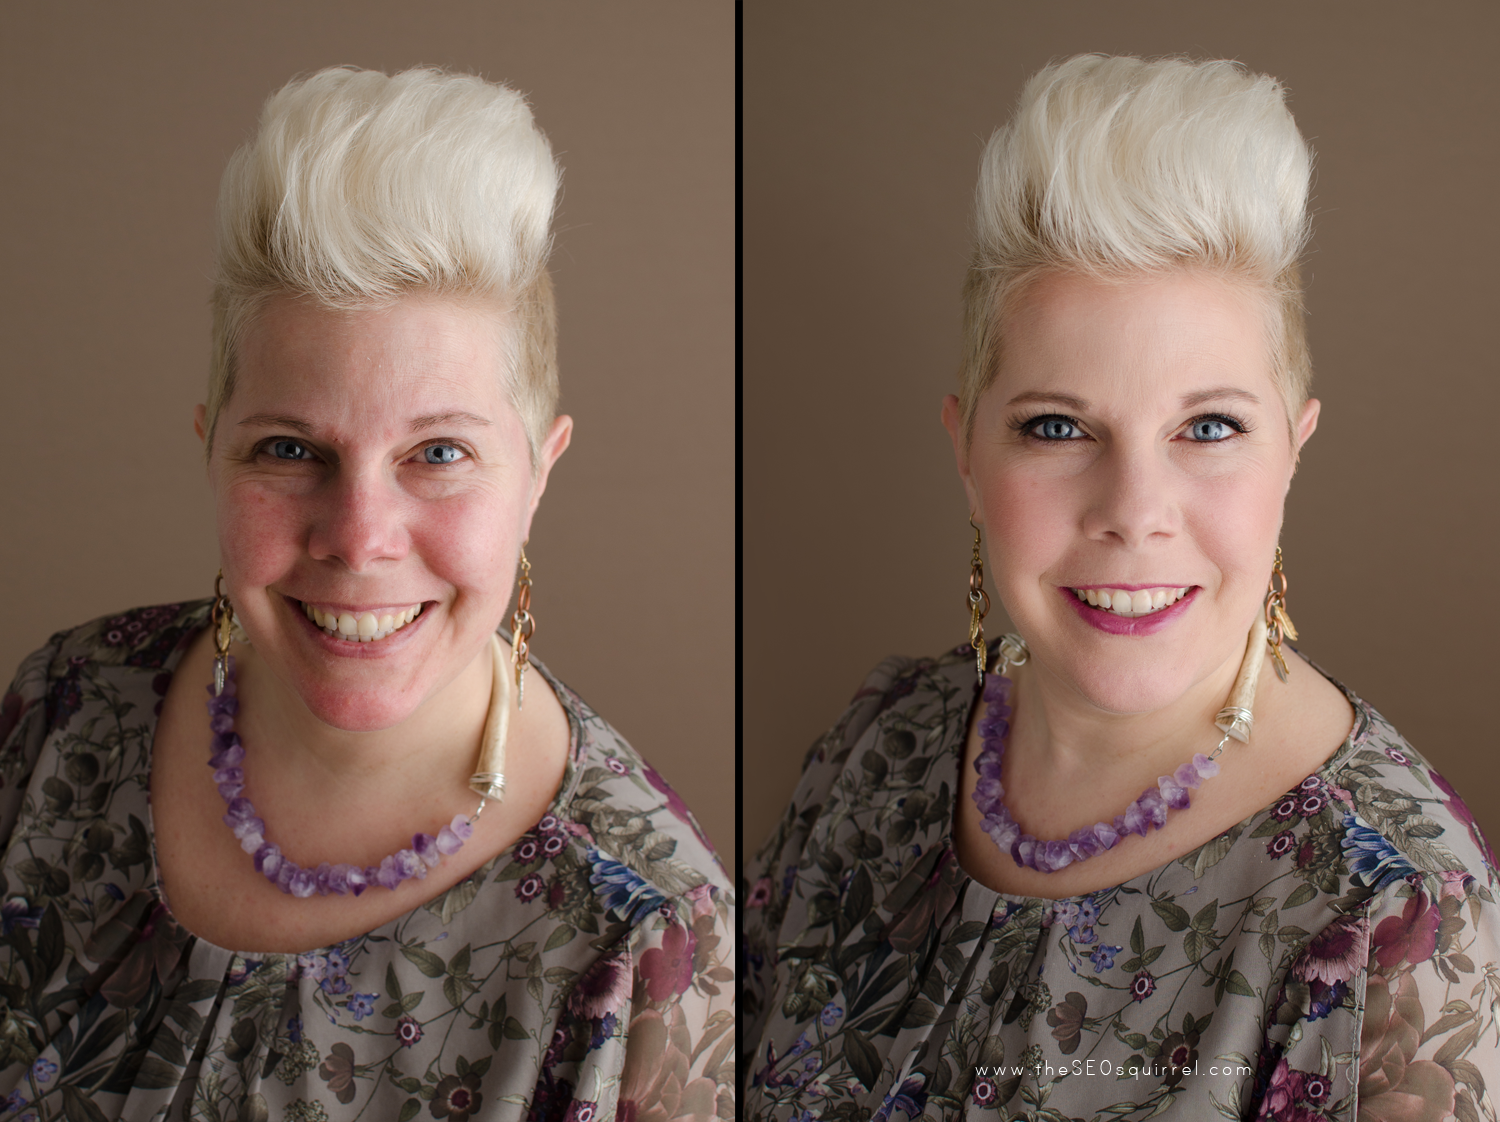 Diane-Lanthier-Headshot-Business-Portrait-Photographer-Ottawa_STF0738-before-after-makeup-comparison